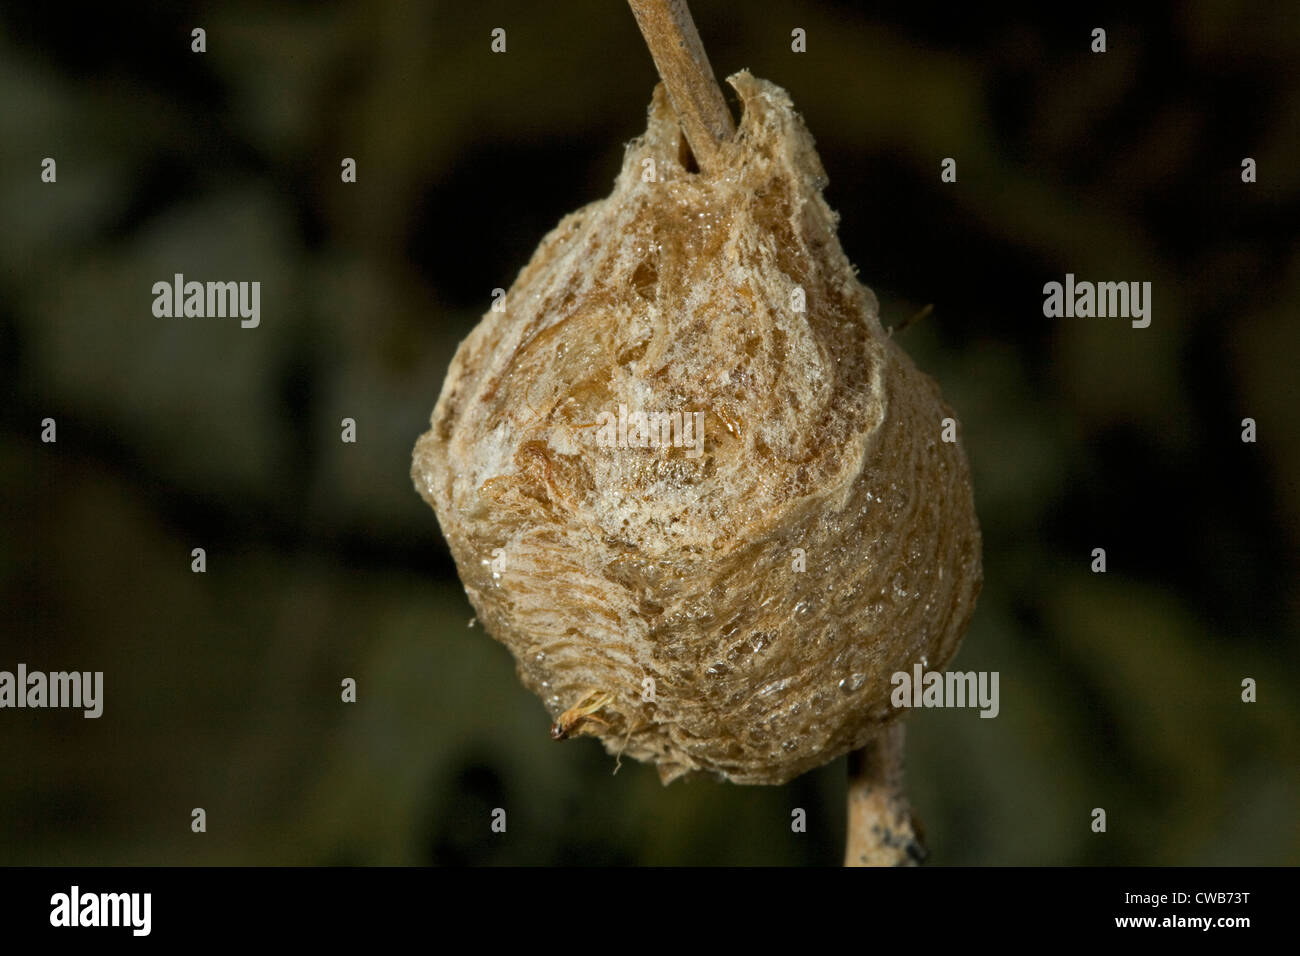 Praying Mantis Eggs High Resolution Stock Photography And Images